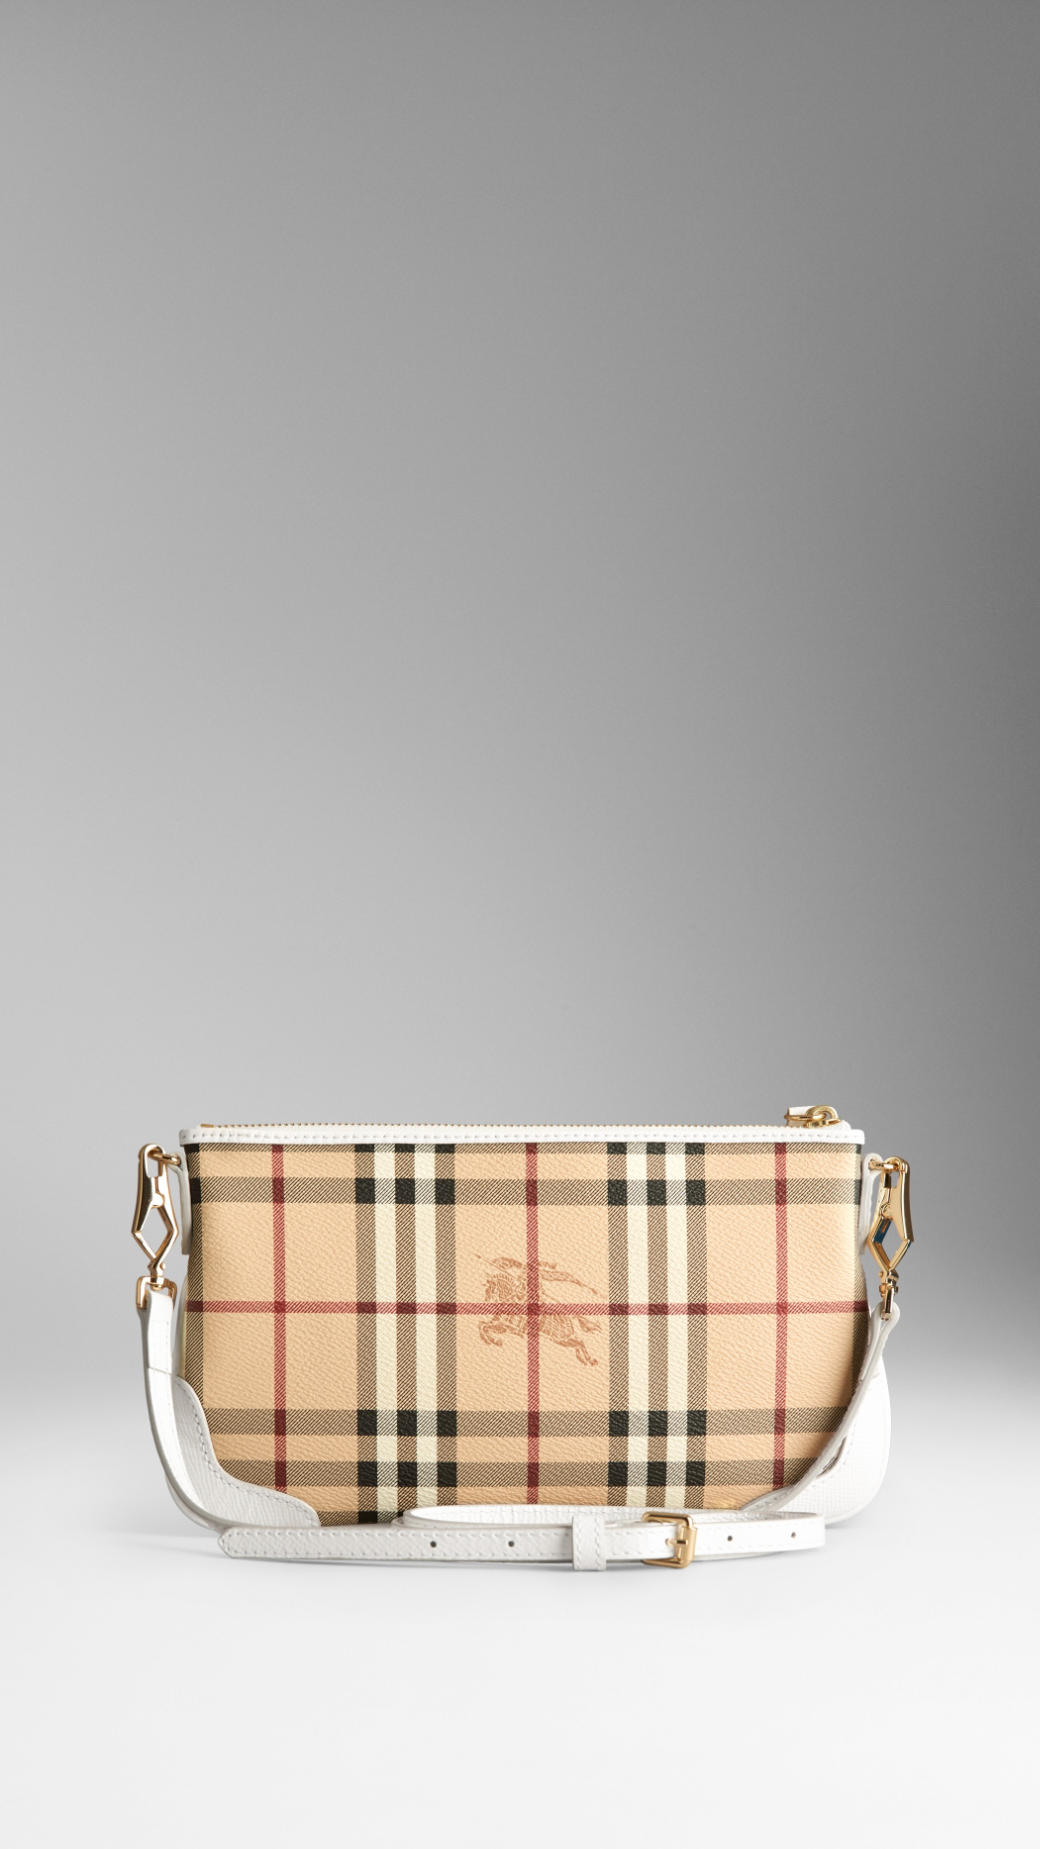 a2c2c5e95a2f Lyst - Burberry Haymarket Check Clutch Bag in White